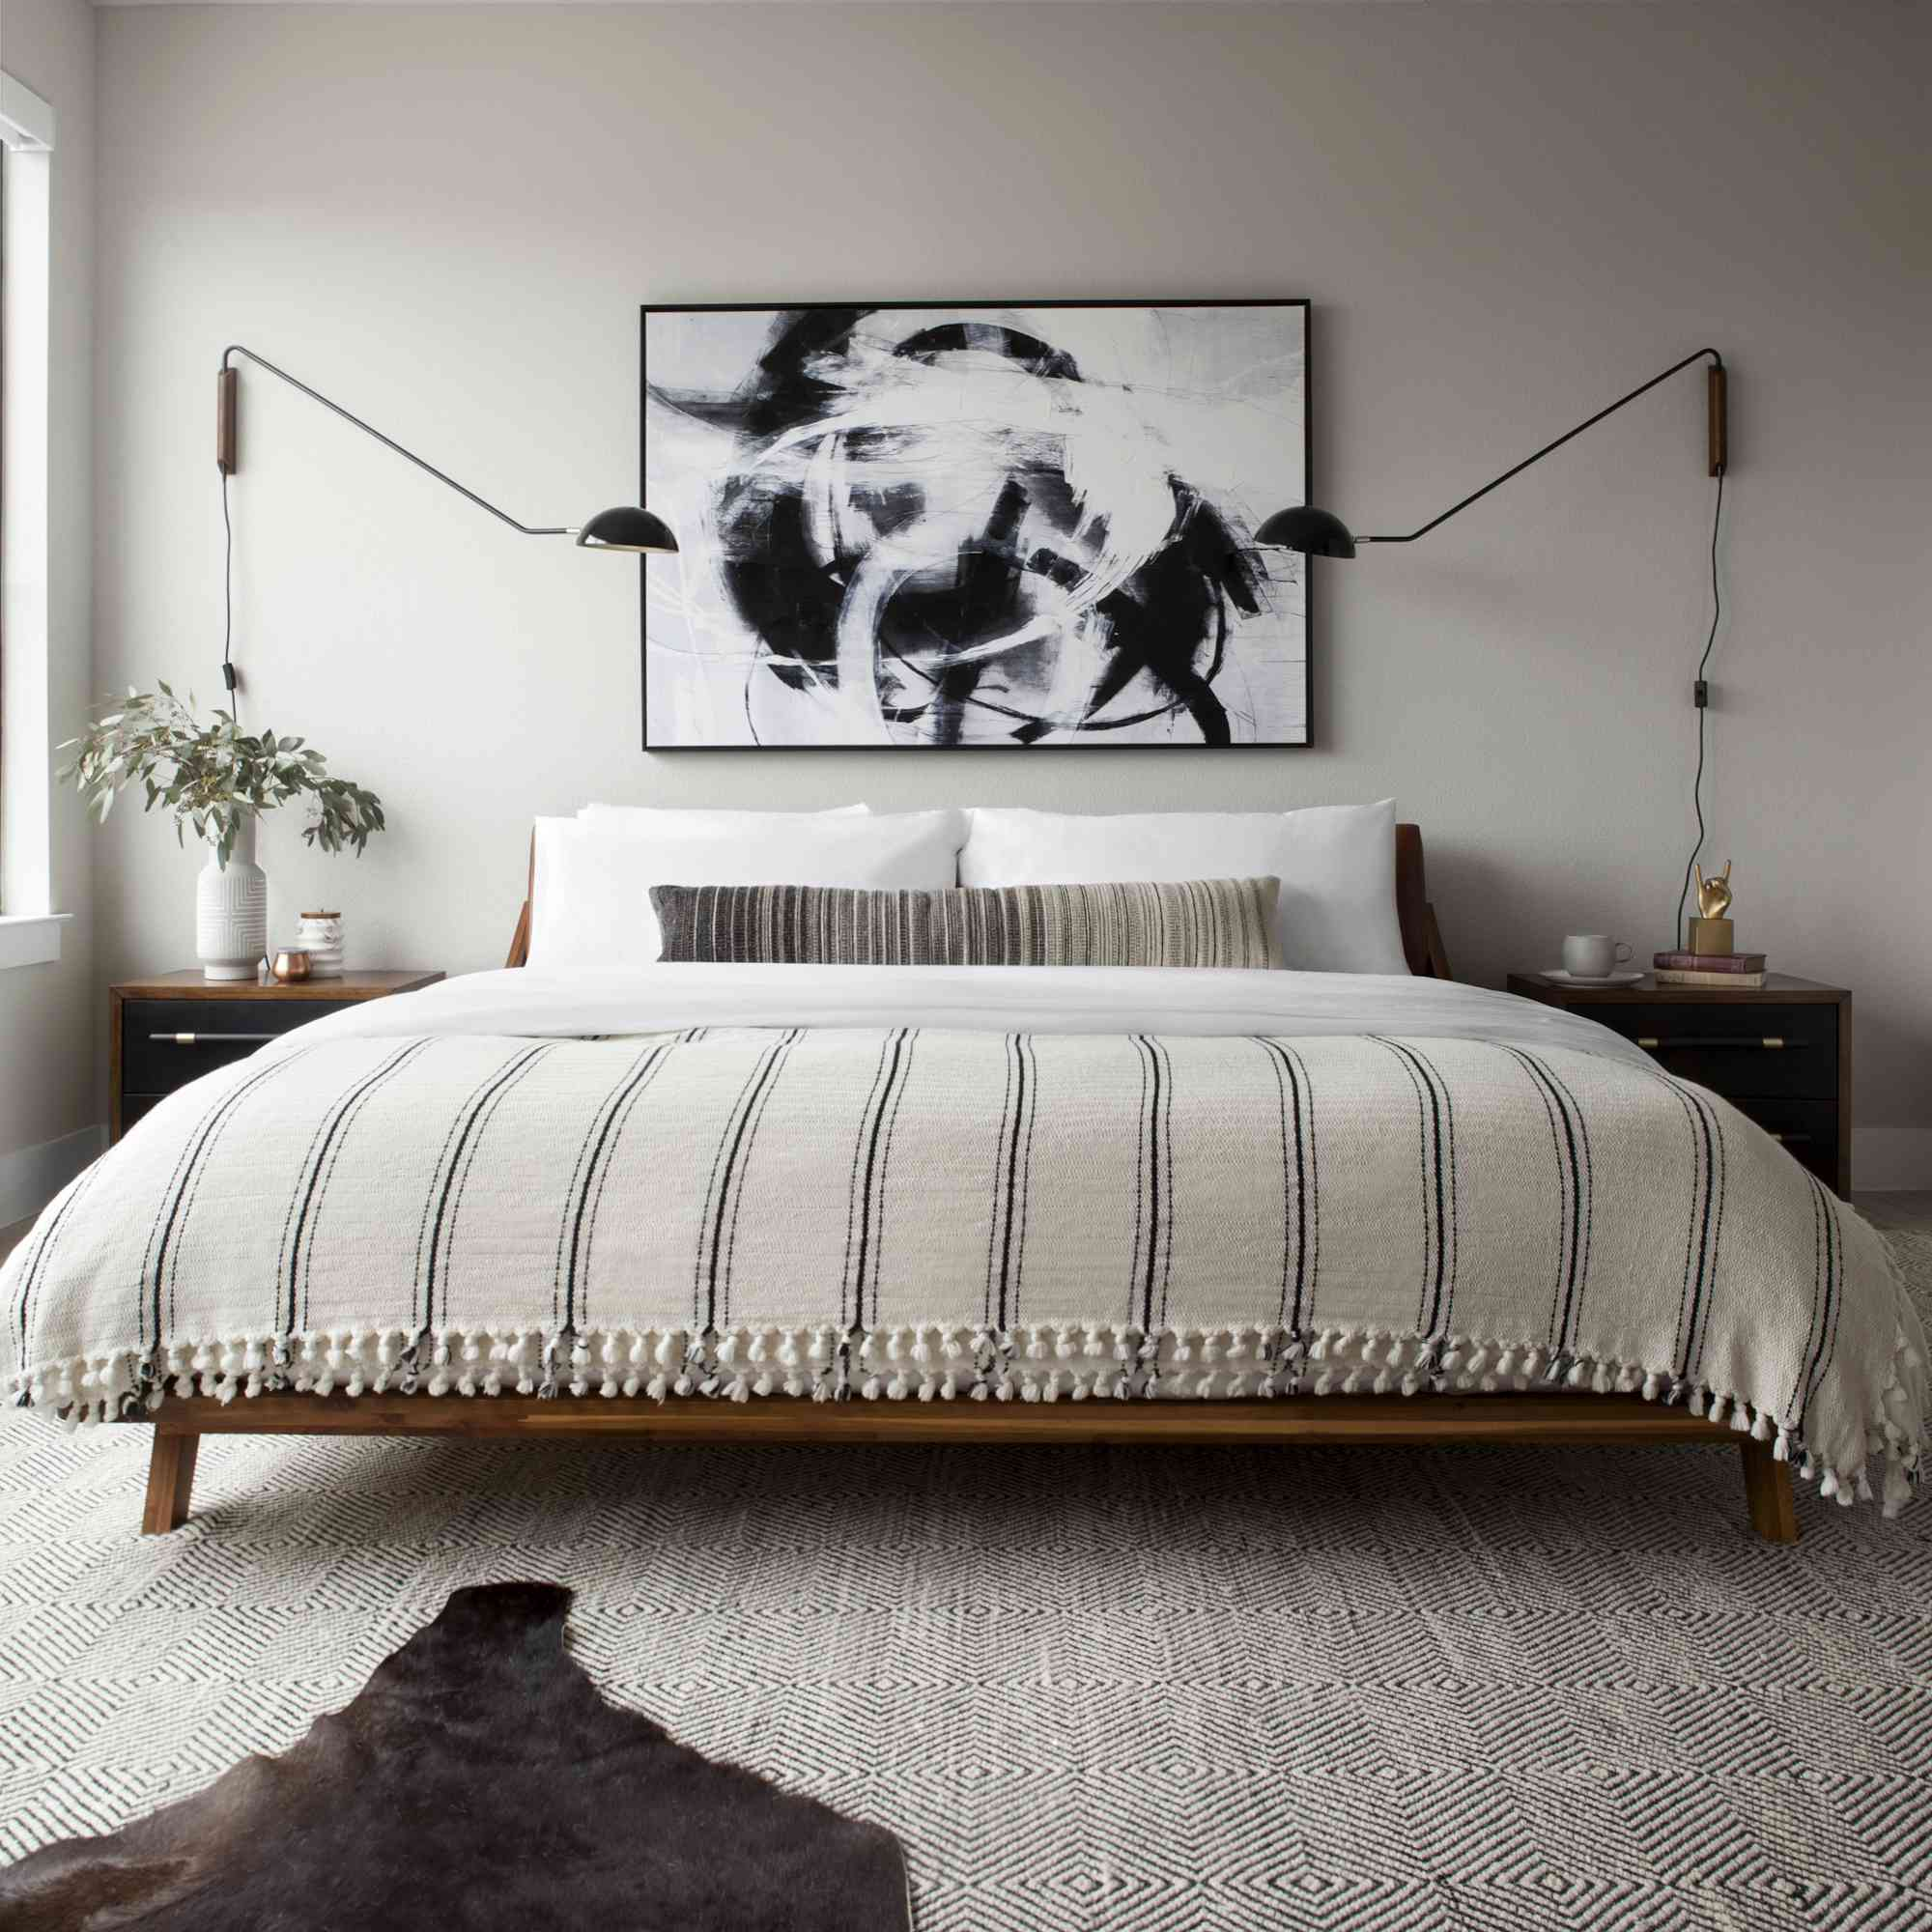 17 Bedroom Wall Decor Ideas To Elevate Your Space